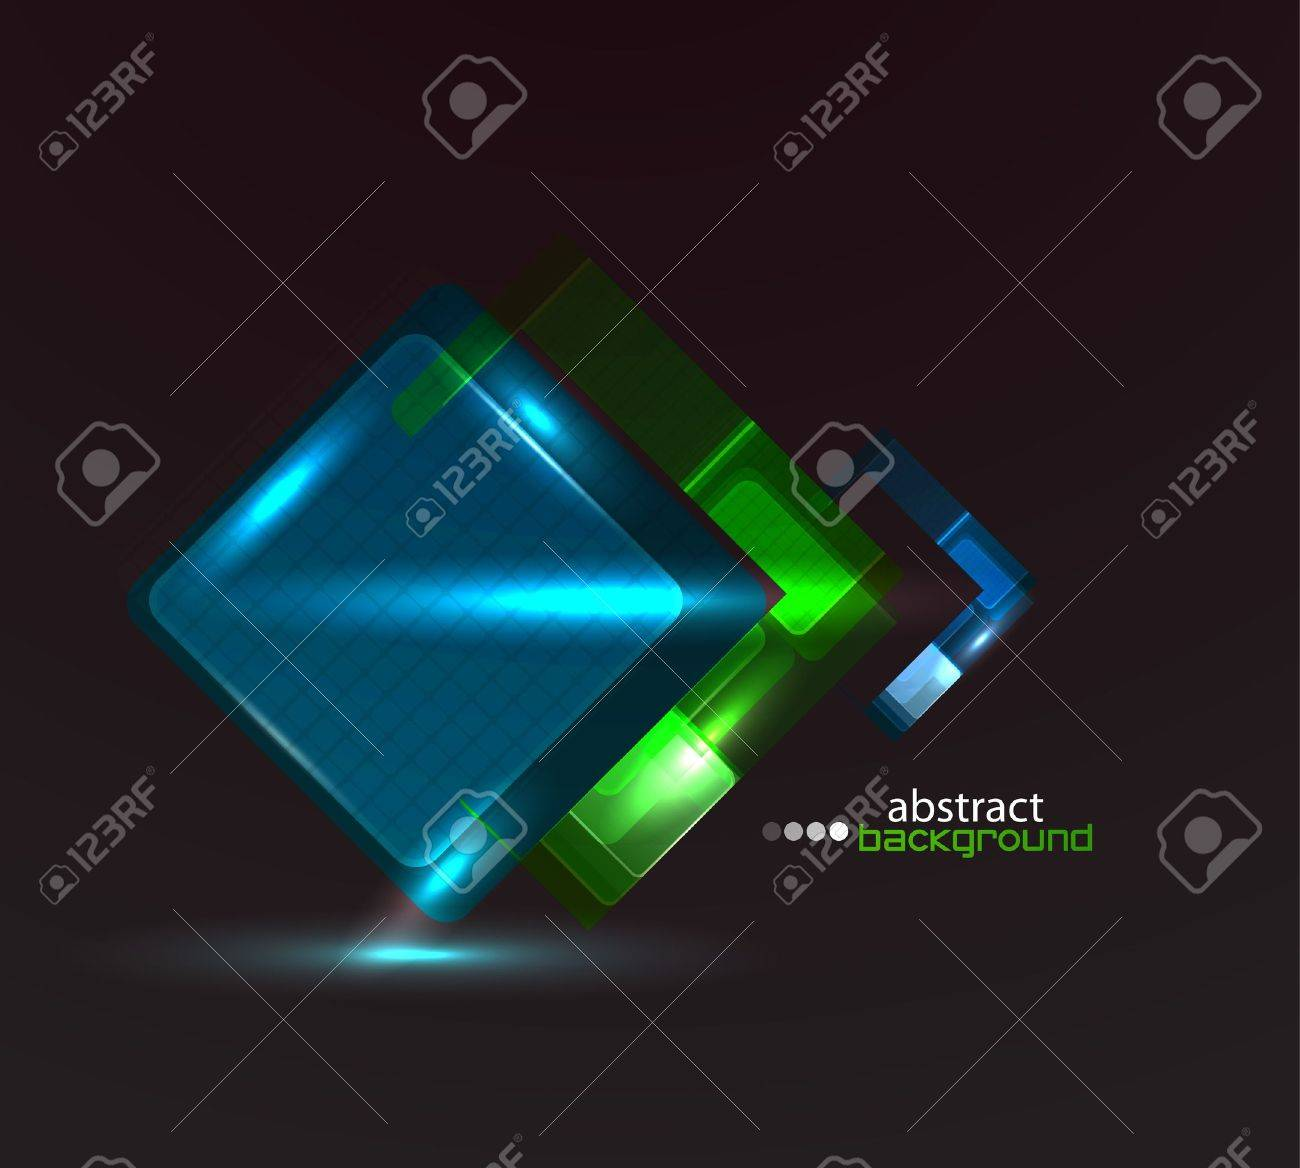 Techno abstract background Stock Photo - 11899914